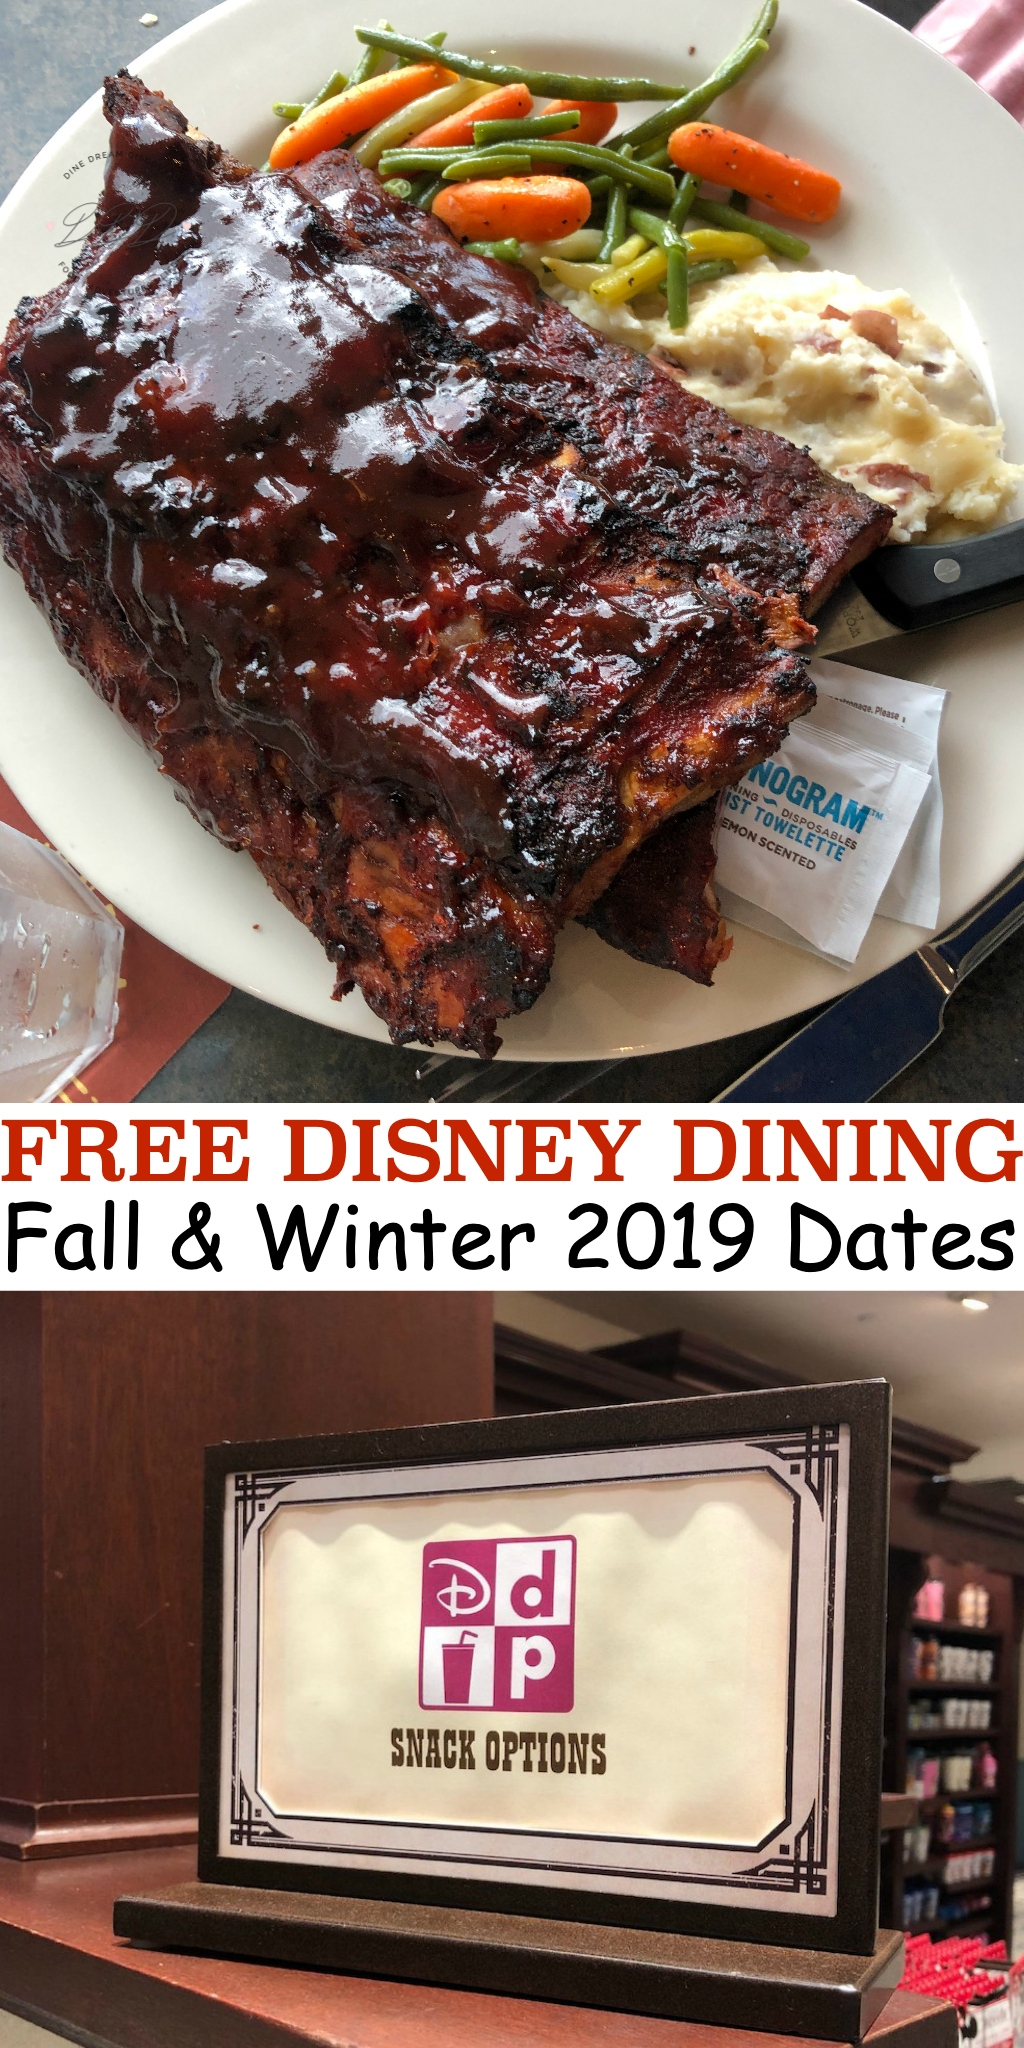 The Free Dining Disney Plan dates have been announced for fall and winter 2019. Find out if your Disney vacation is included in this!